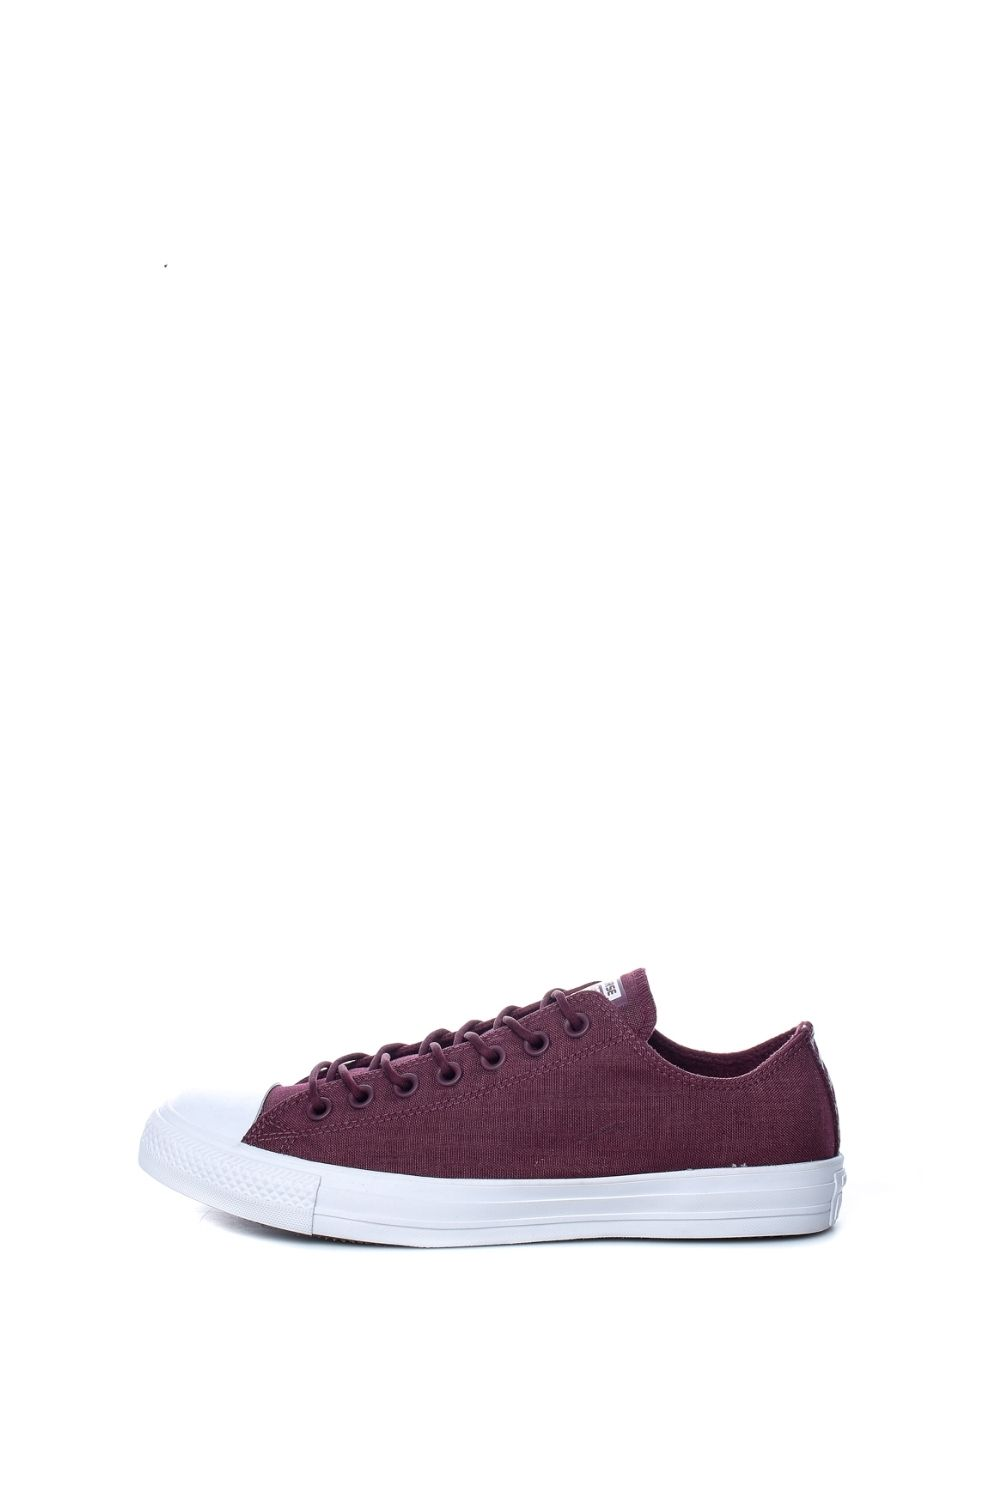 CONVERSE – Unisex sneakers CONVERSE Chuck Taylor All Star Ox μπορντό μοβ